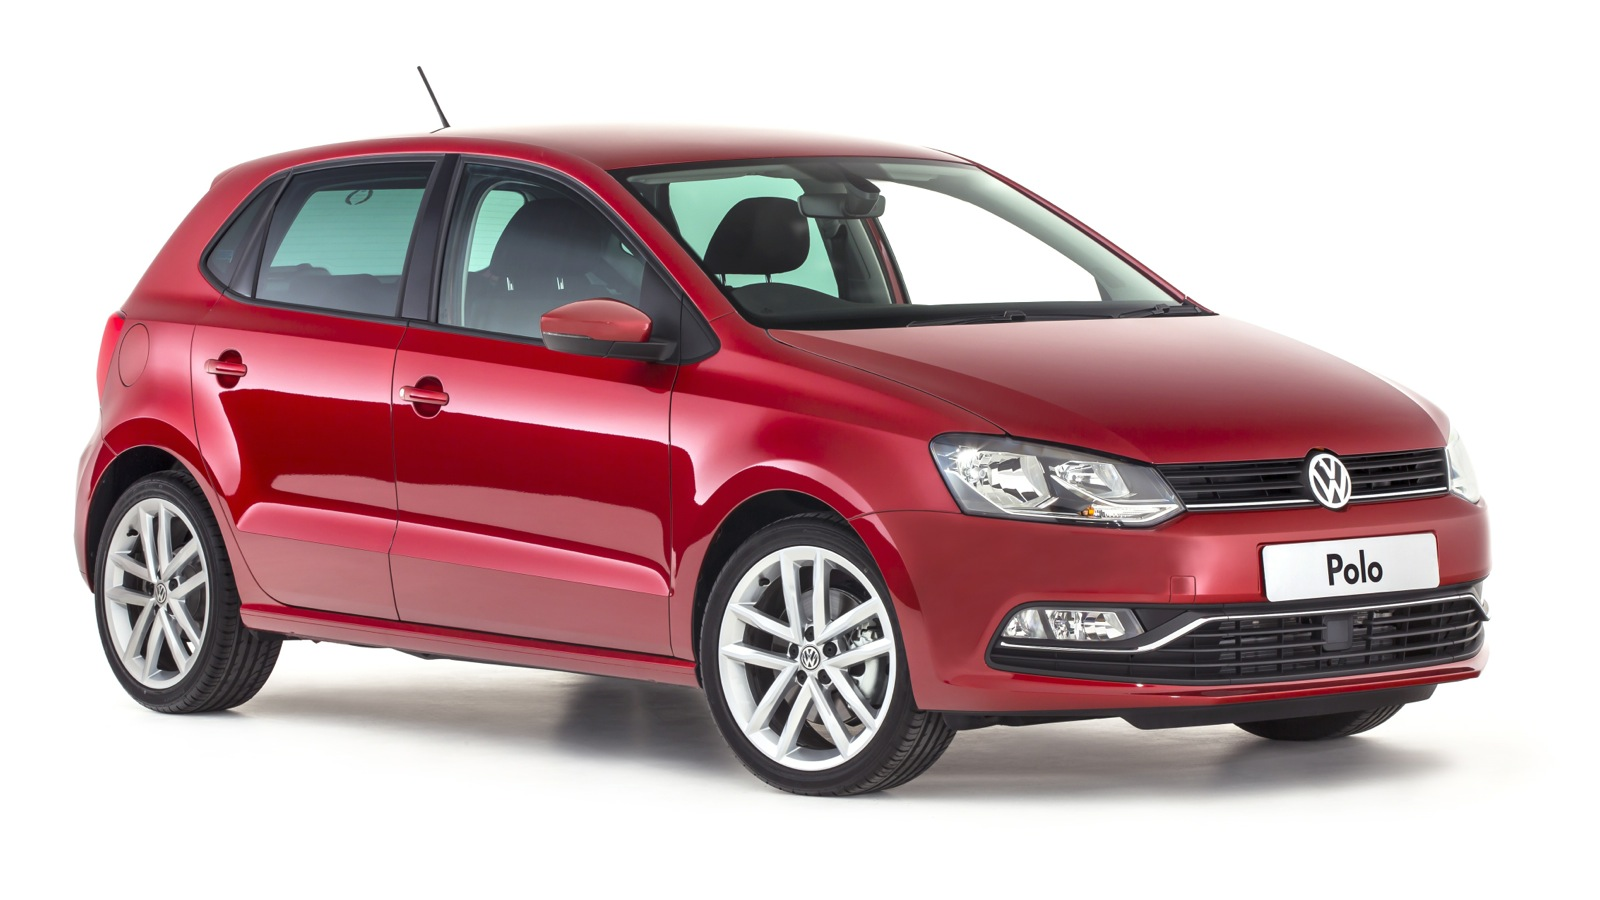 2015 volkswagen polo pricing and specifications updated with driveaway prices photos 1 of 60. Black Bedroom Furniture Sets. Home Design Ideas